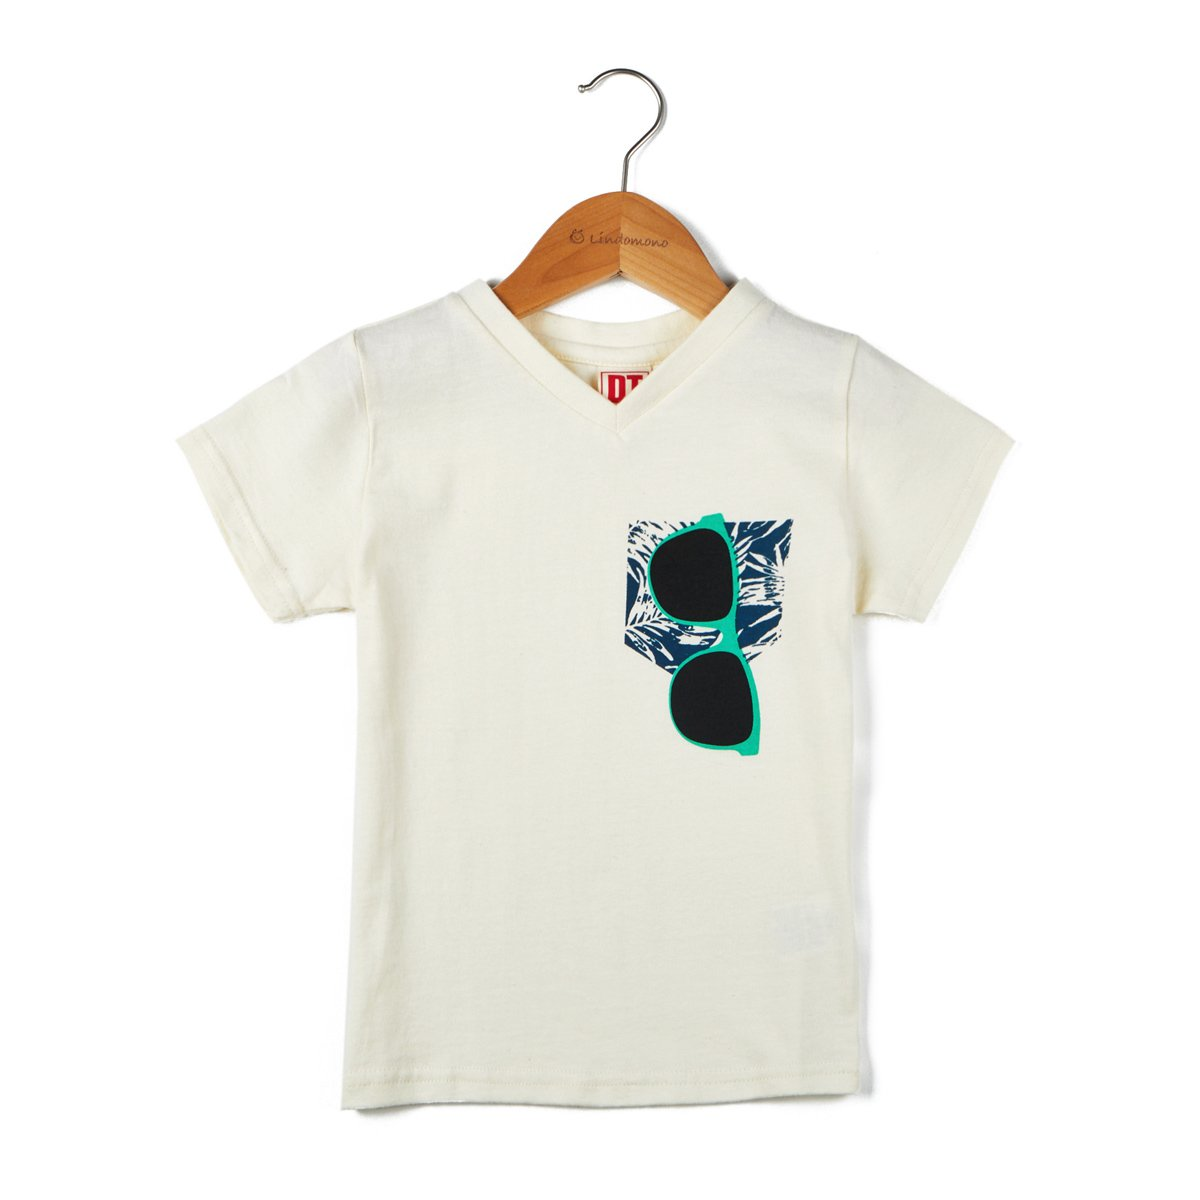 Lindomono Boys' Sunglasses In A Pocket Short Sleeve Graphic Tee 3-4y White